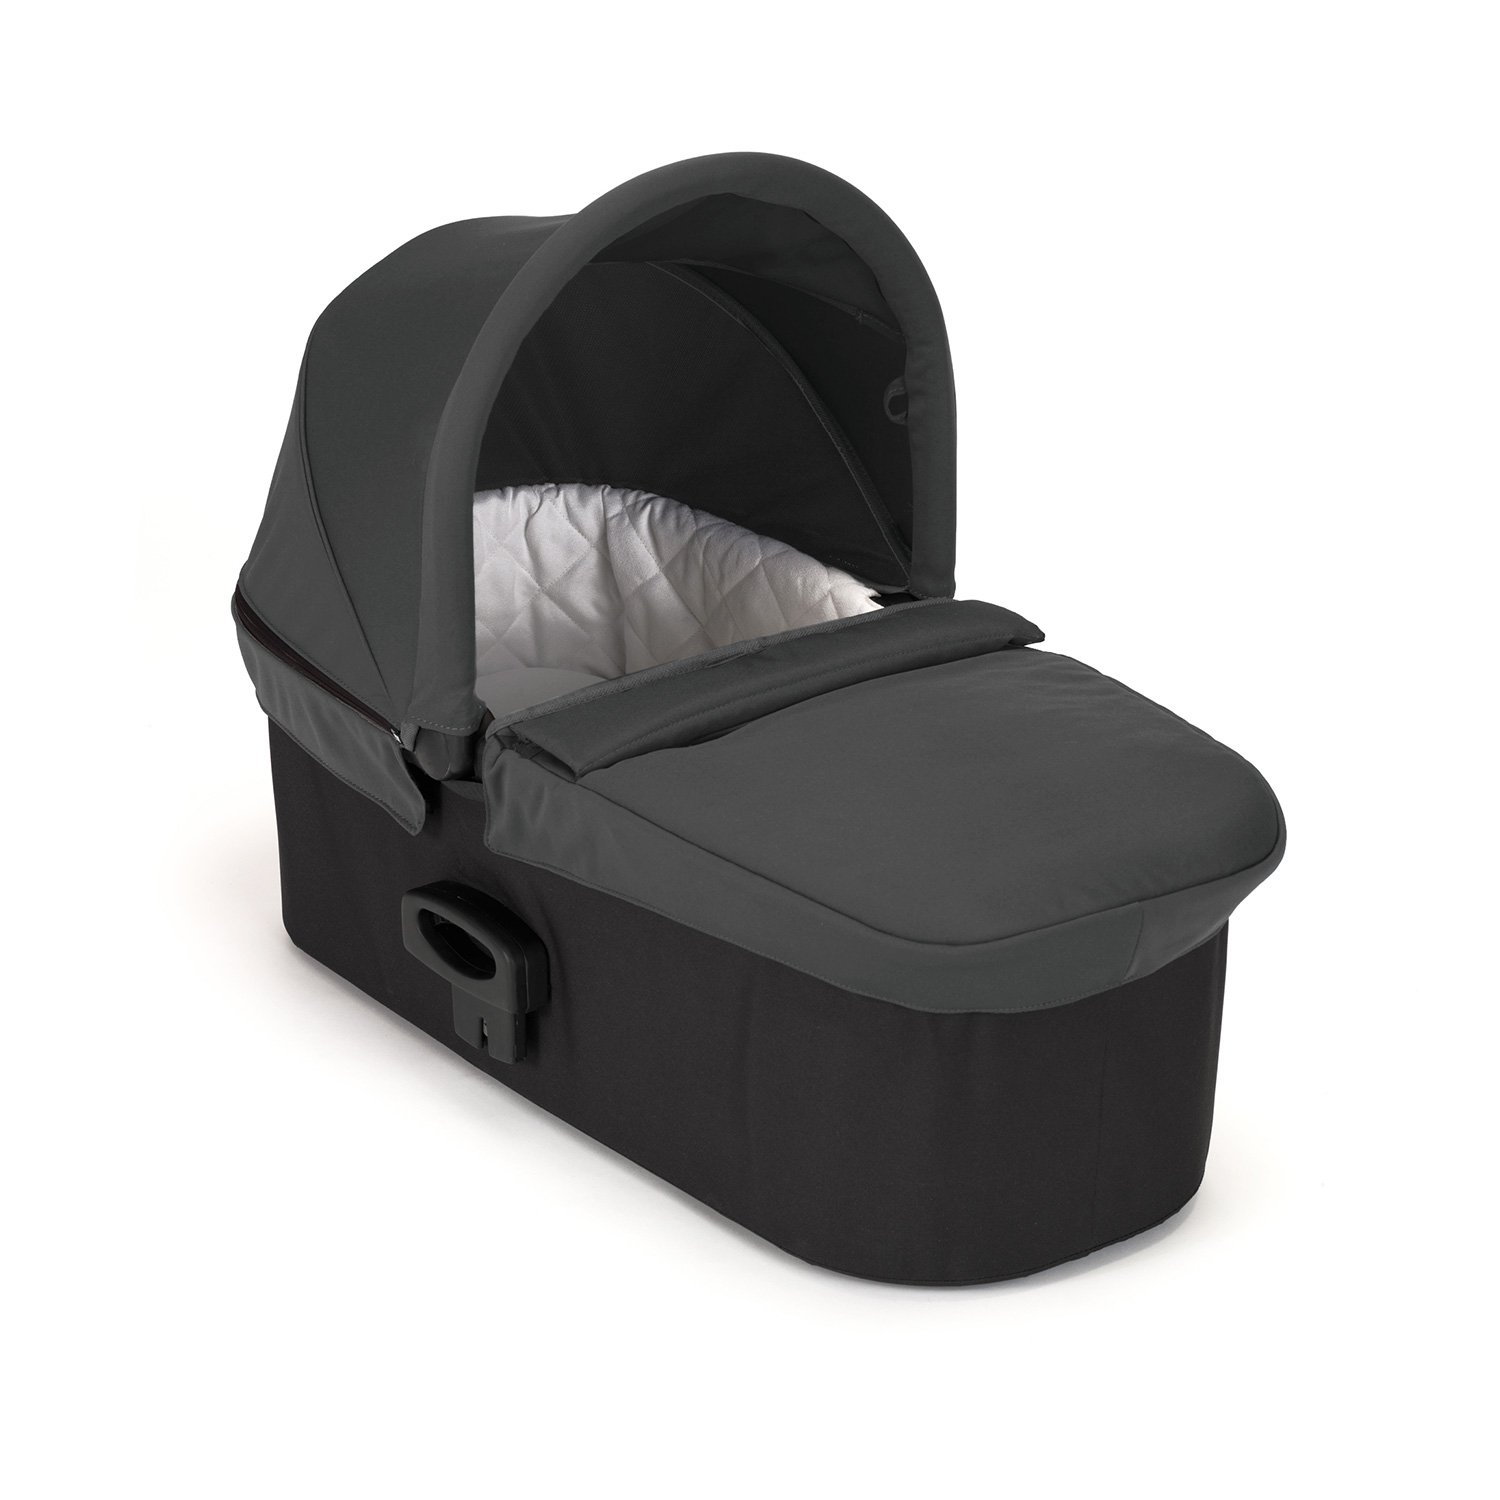 Baby Jogger Deluxe Pram Carrycot Black 2022870